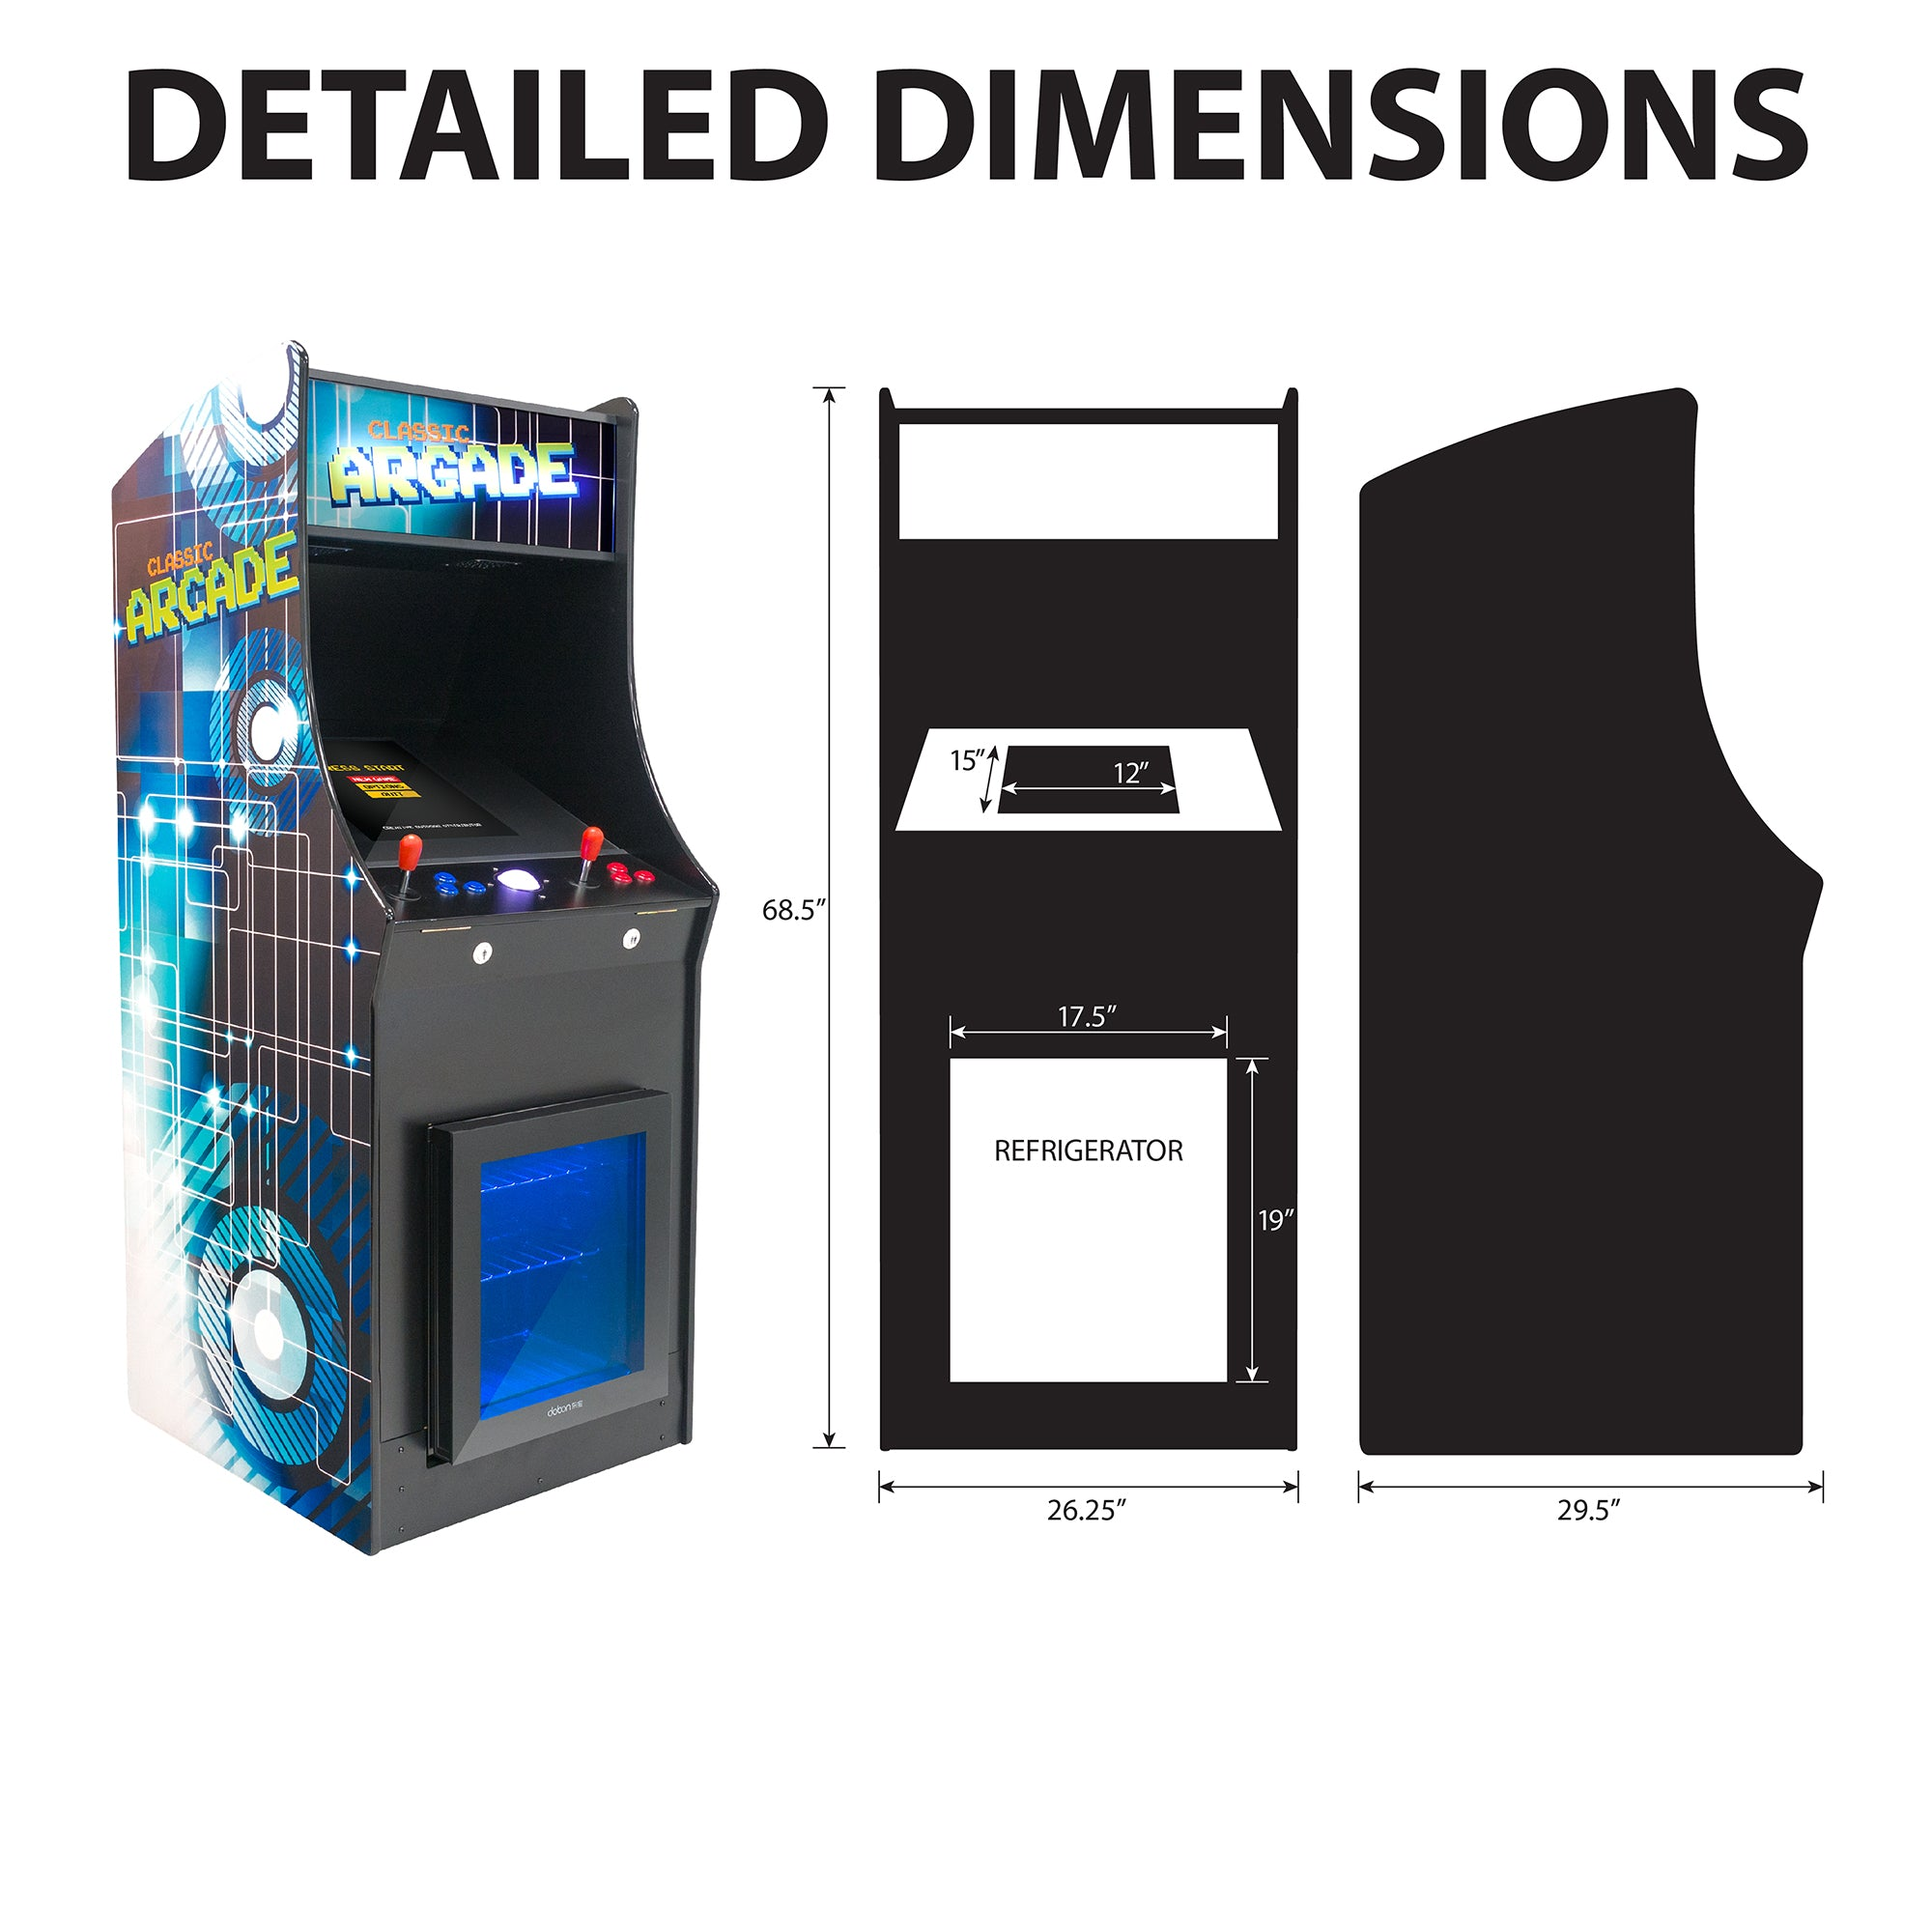 2 Player Stand Up FULL SIZE Classic Video Game Arcade with Built-in Refrigerator Dimensions